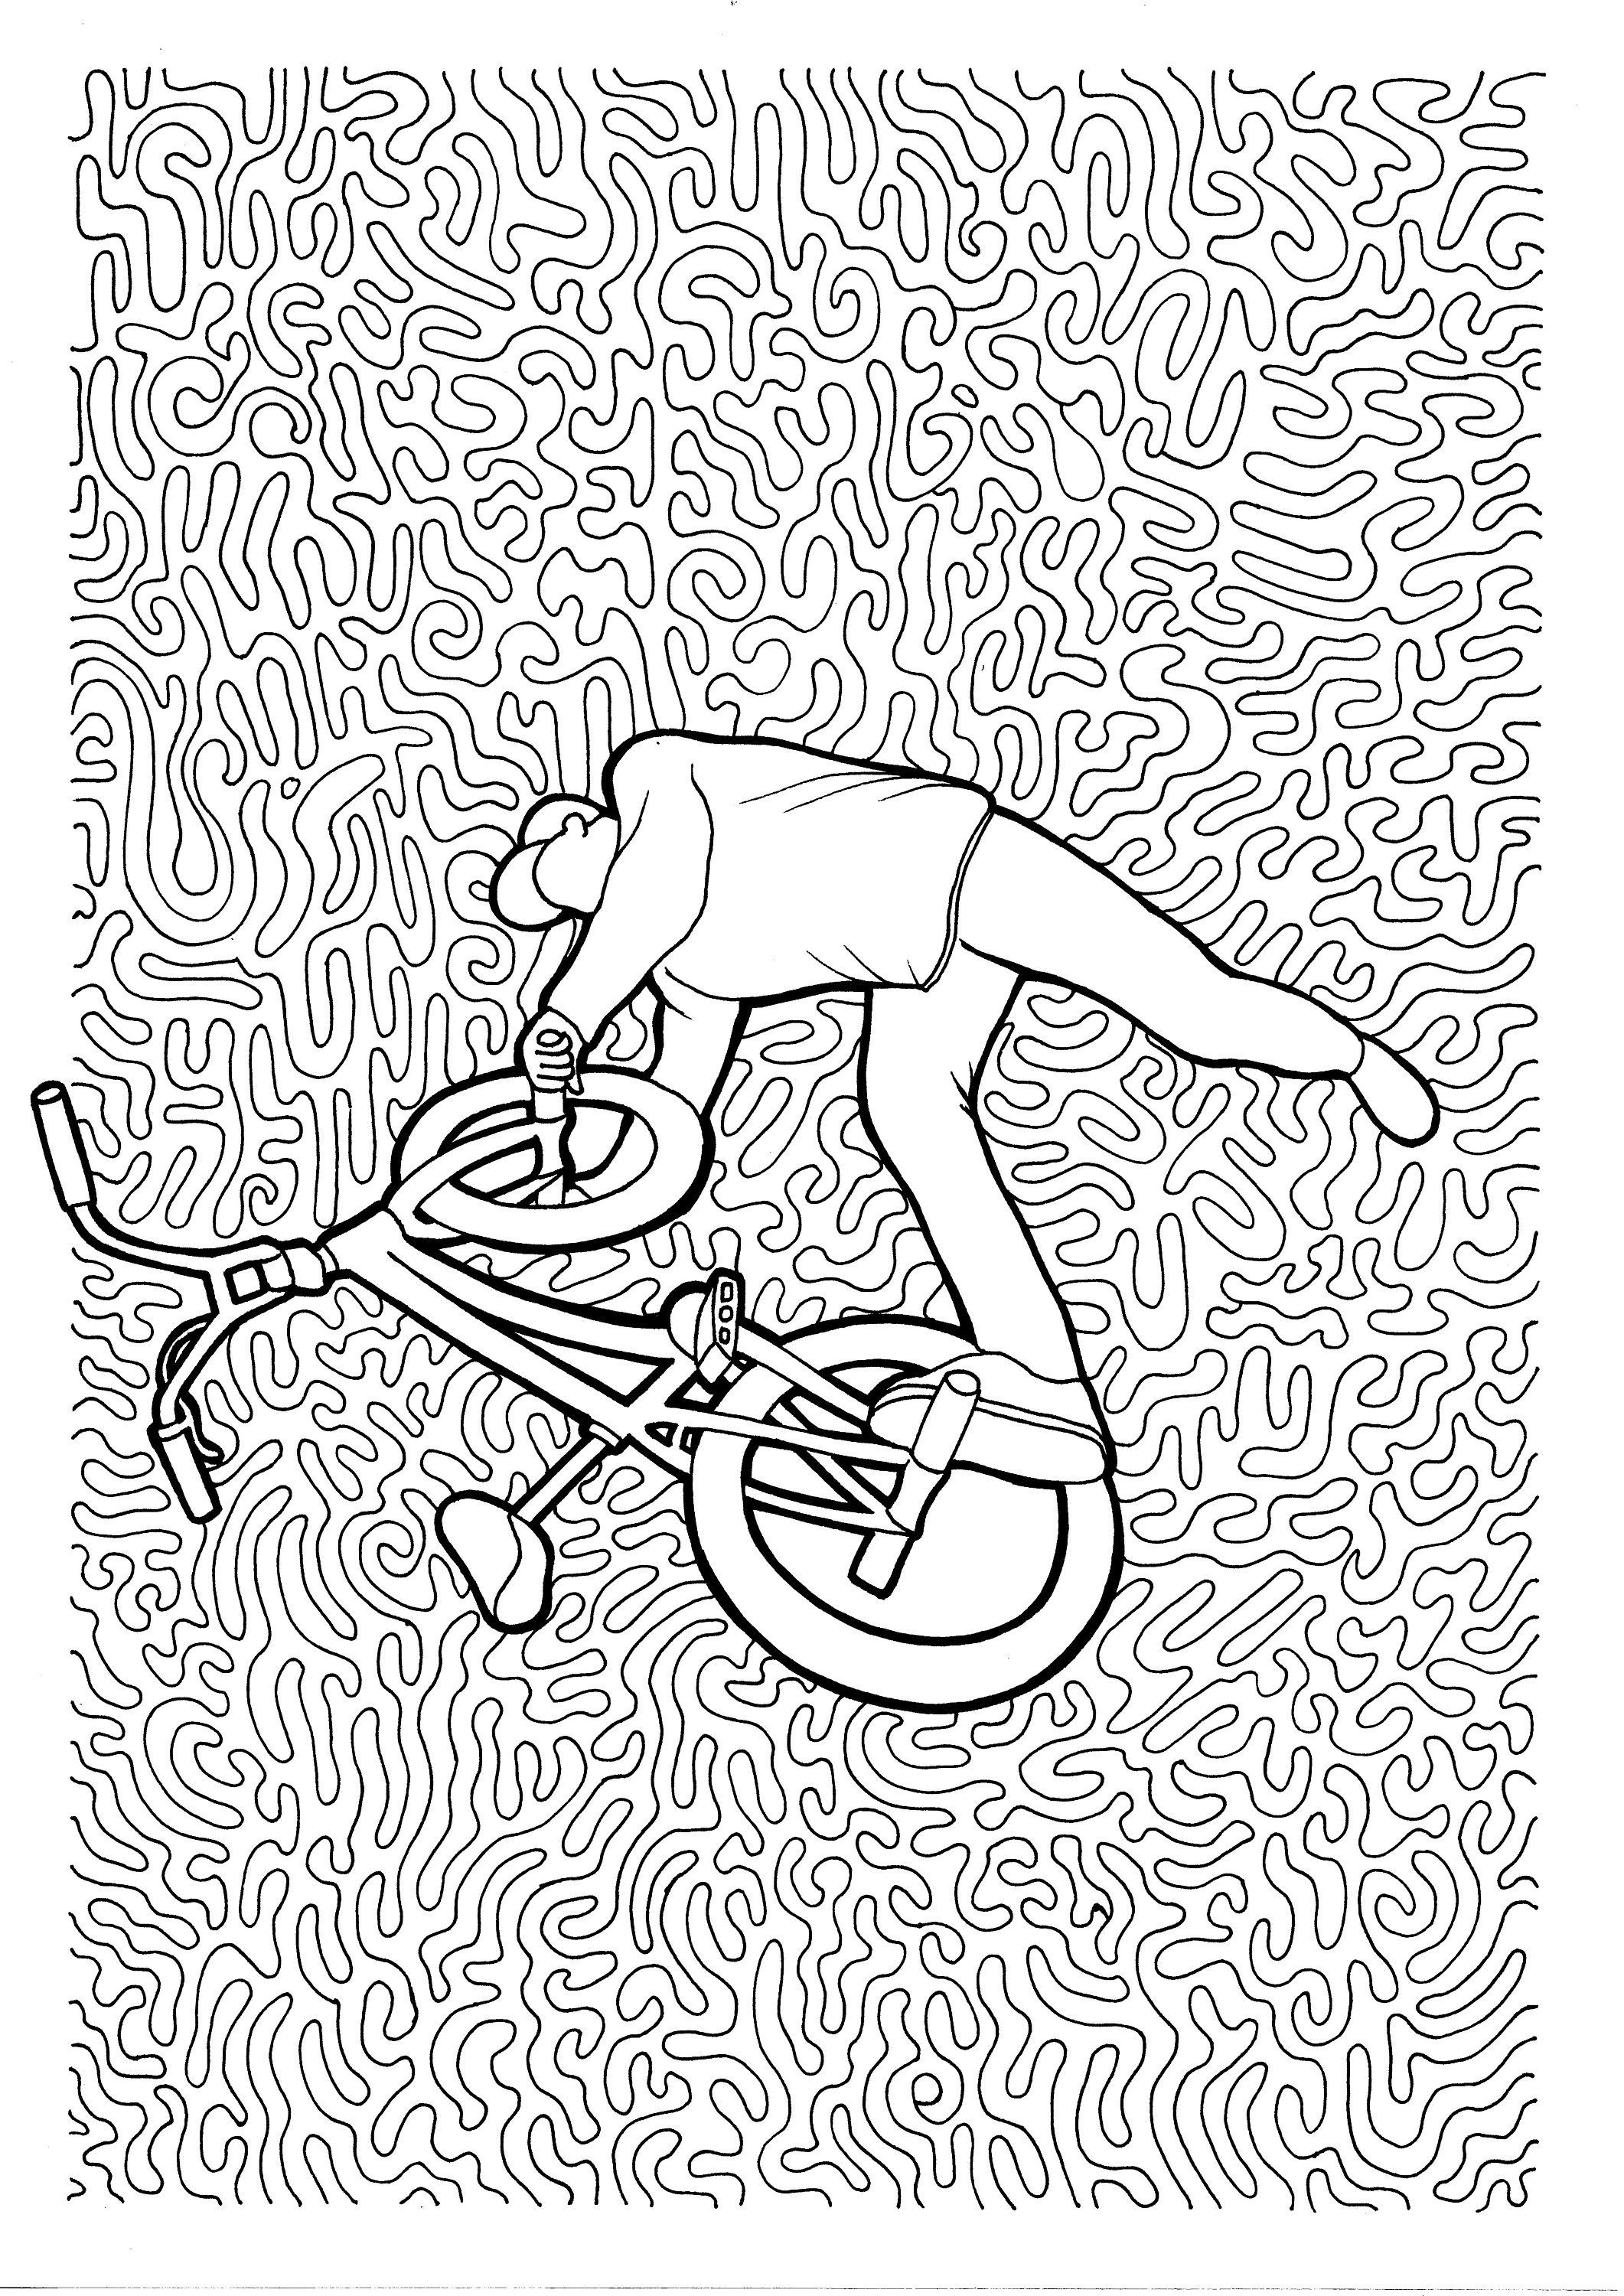 Upside Down Bmx Flatland Pdf Zentangle Coloring Page Bmx